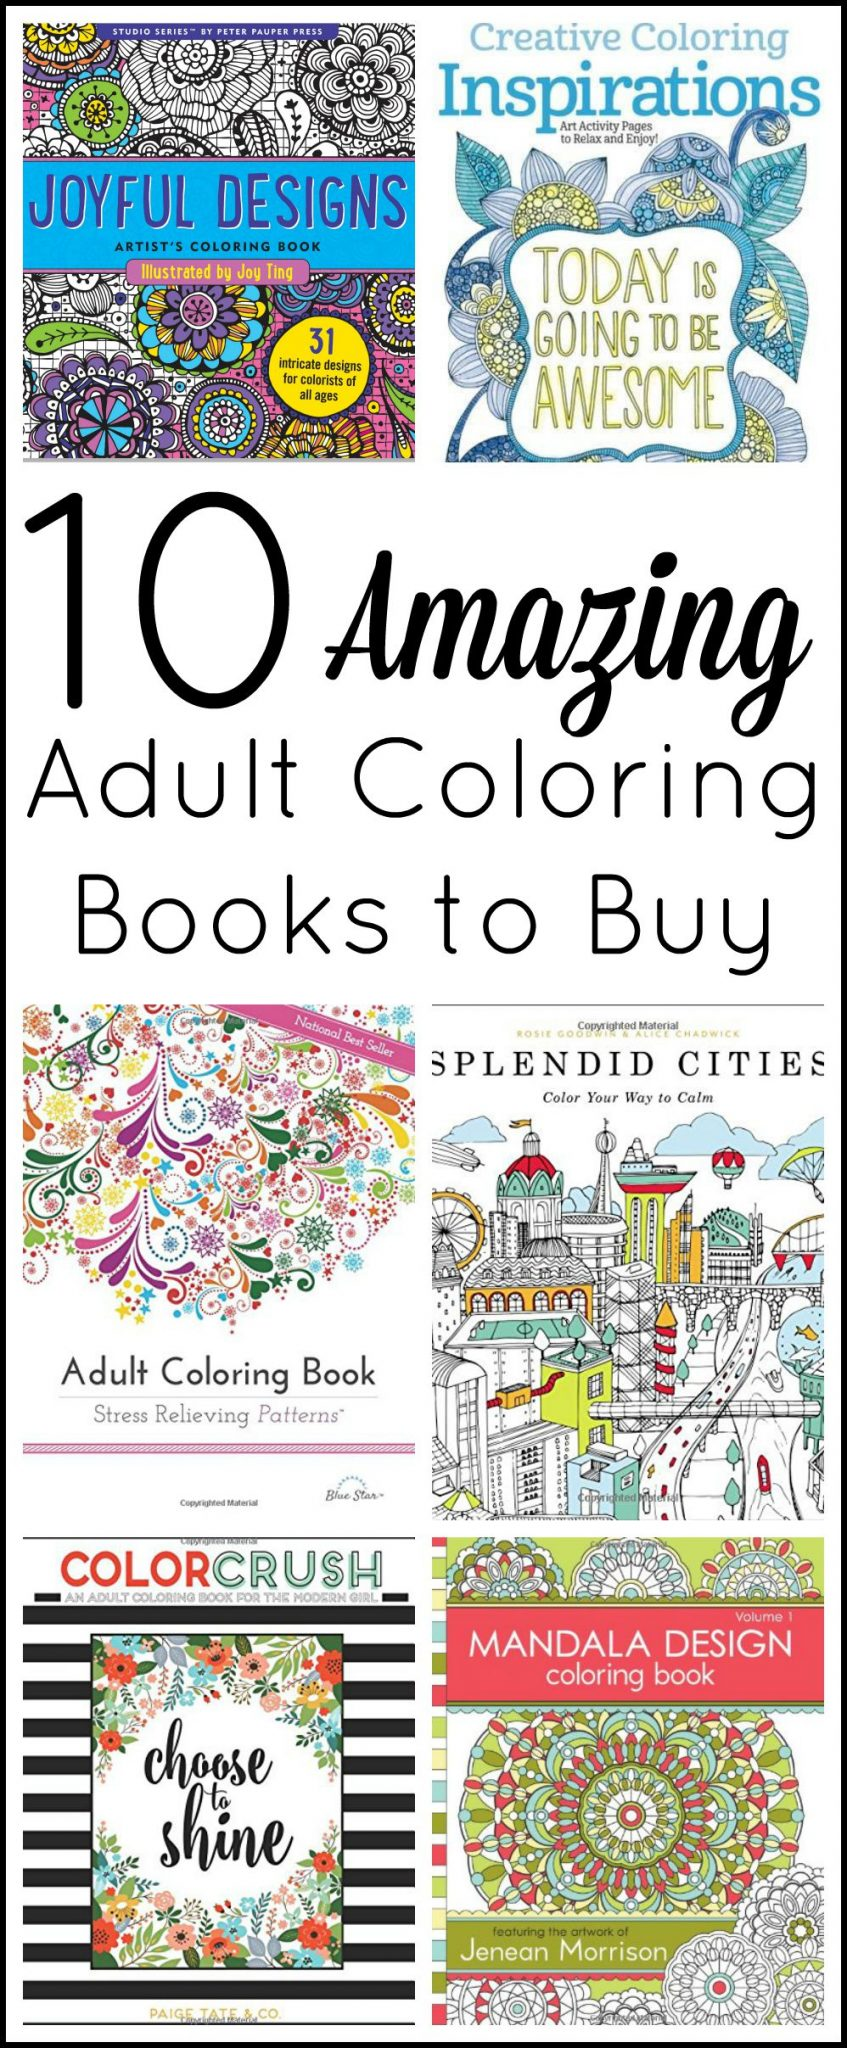 Buy one of these 10 amazing adult coloring books today!